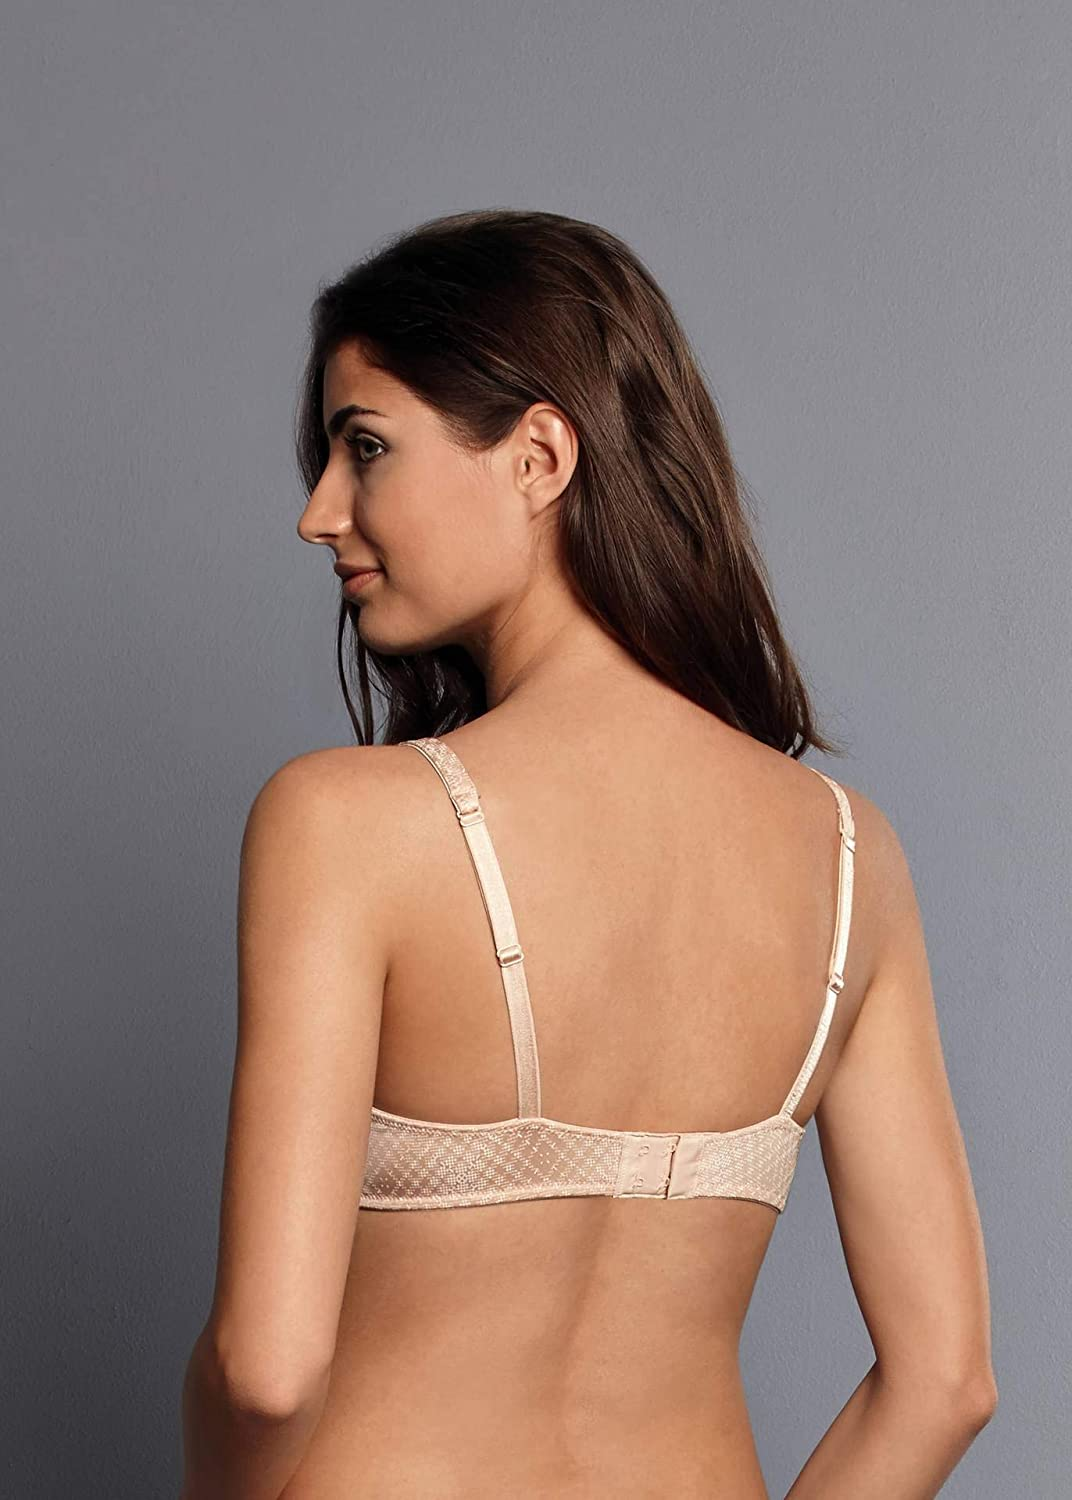 Details about  /Rosa Faia by Anita Caroline Moulded Underwired Bra 5662 New Womens Full Cup Bras